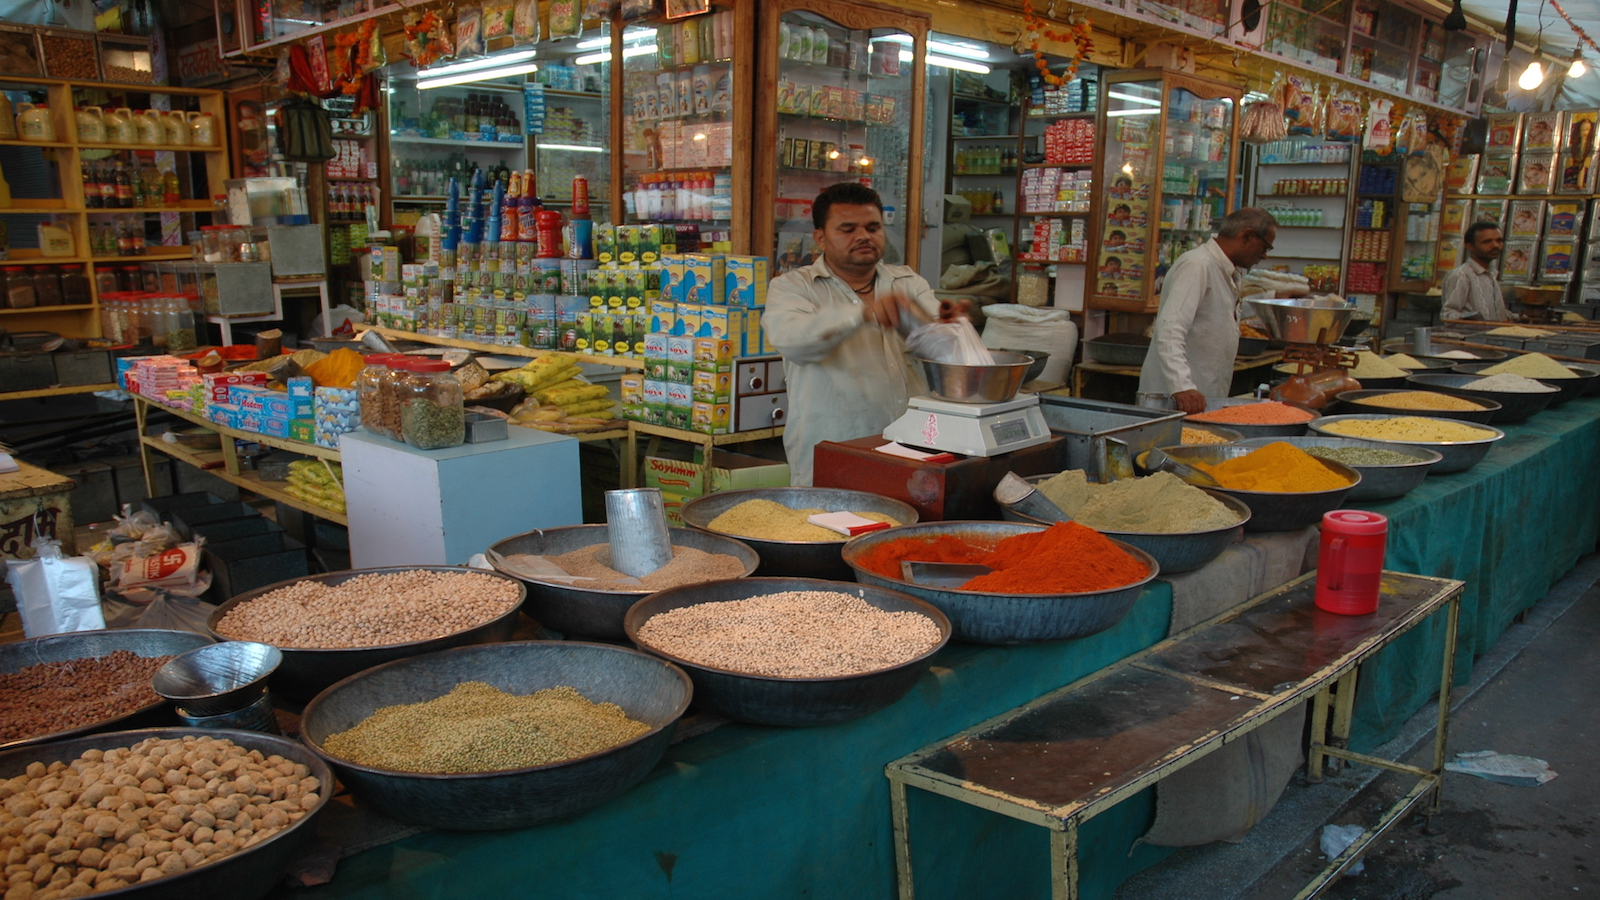 Man selling spices in front of a store in India